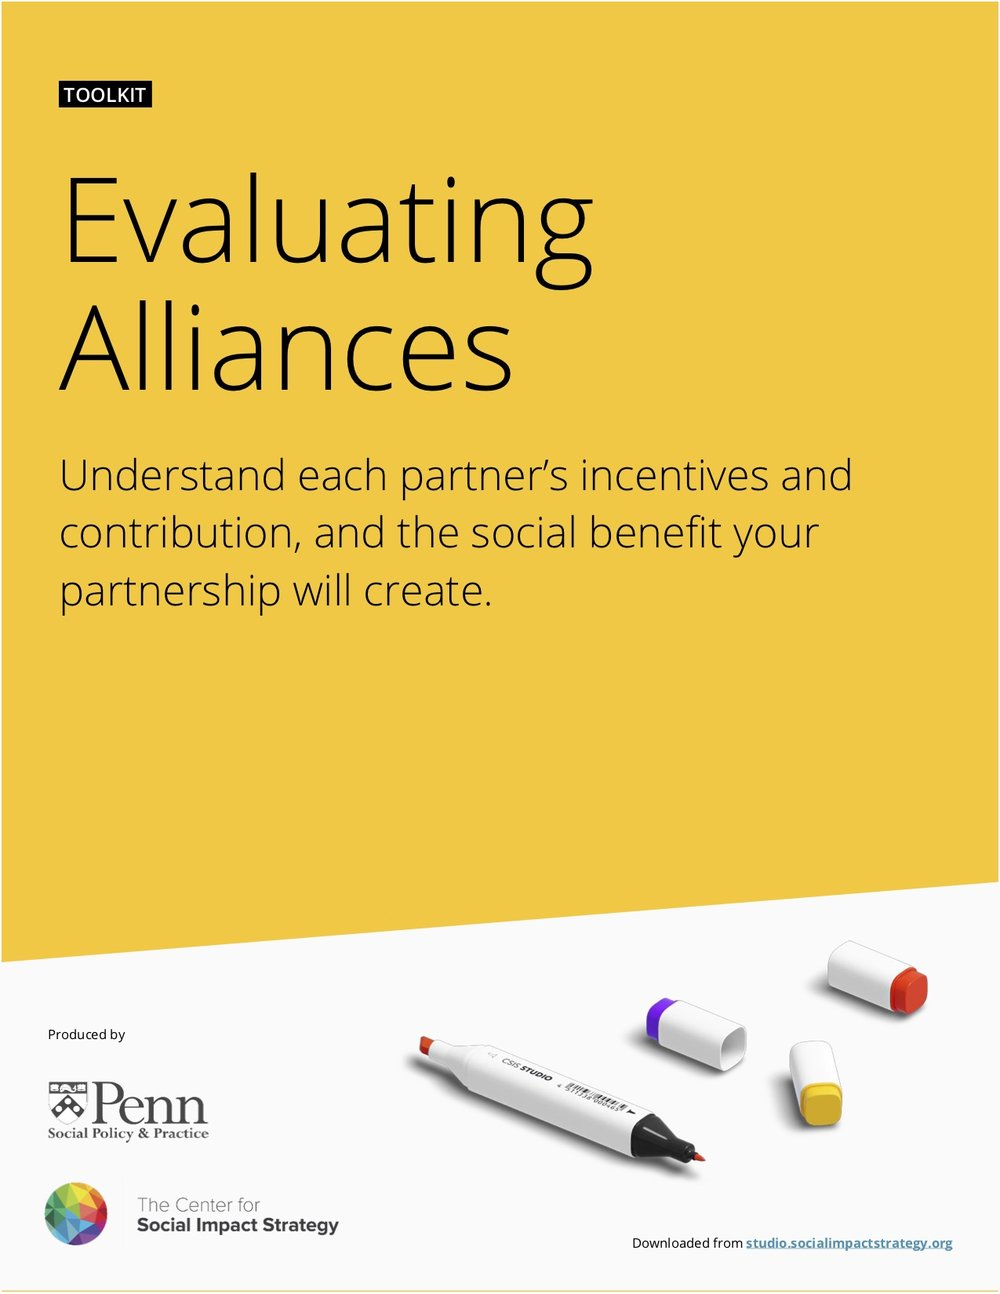 Evaluating Alliances